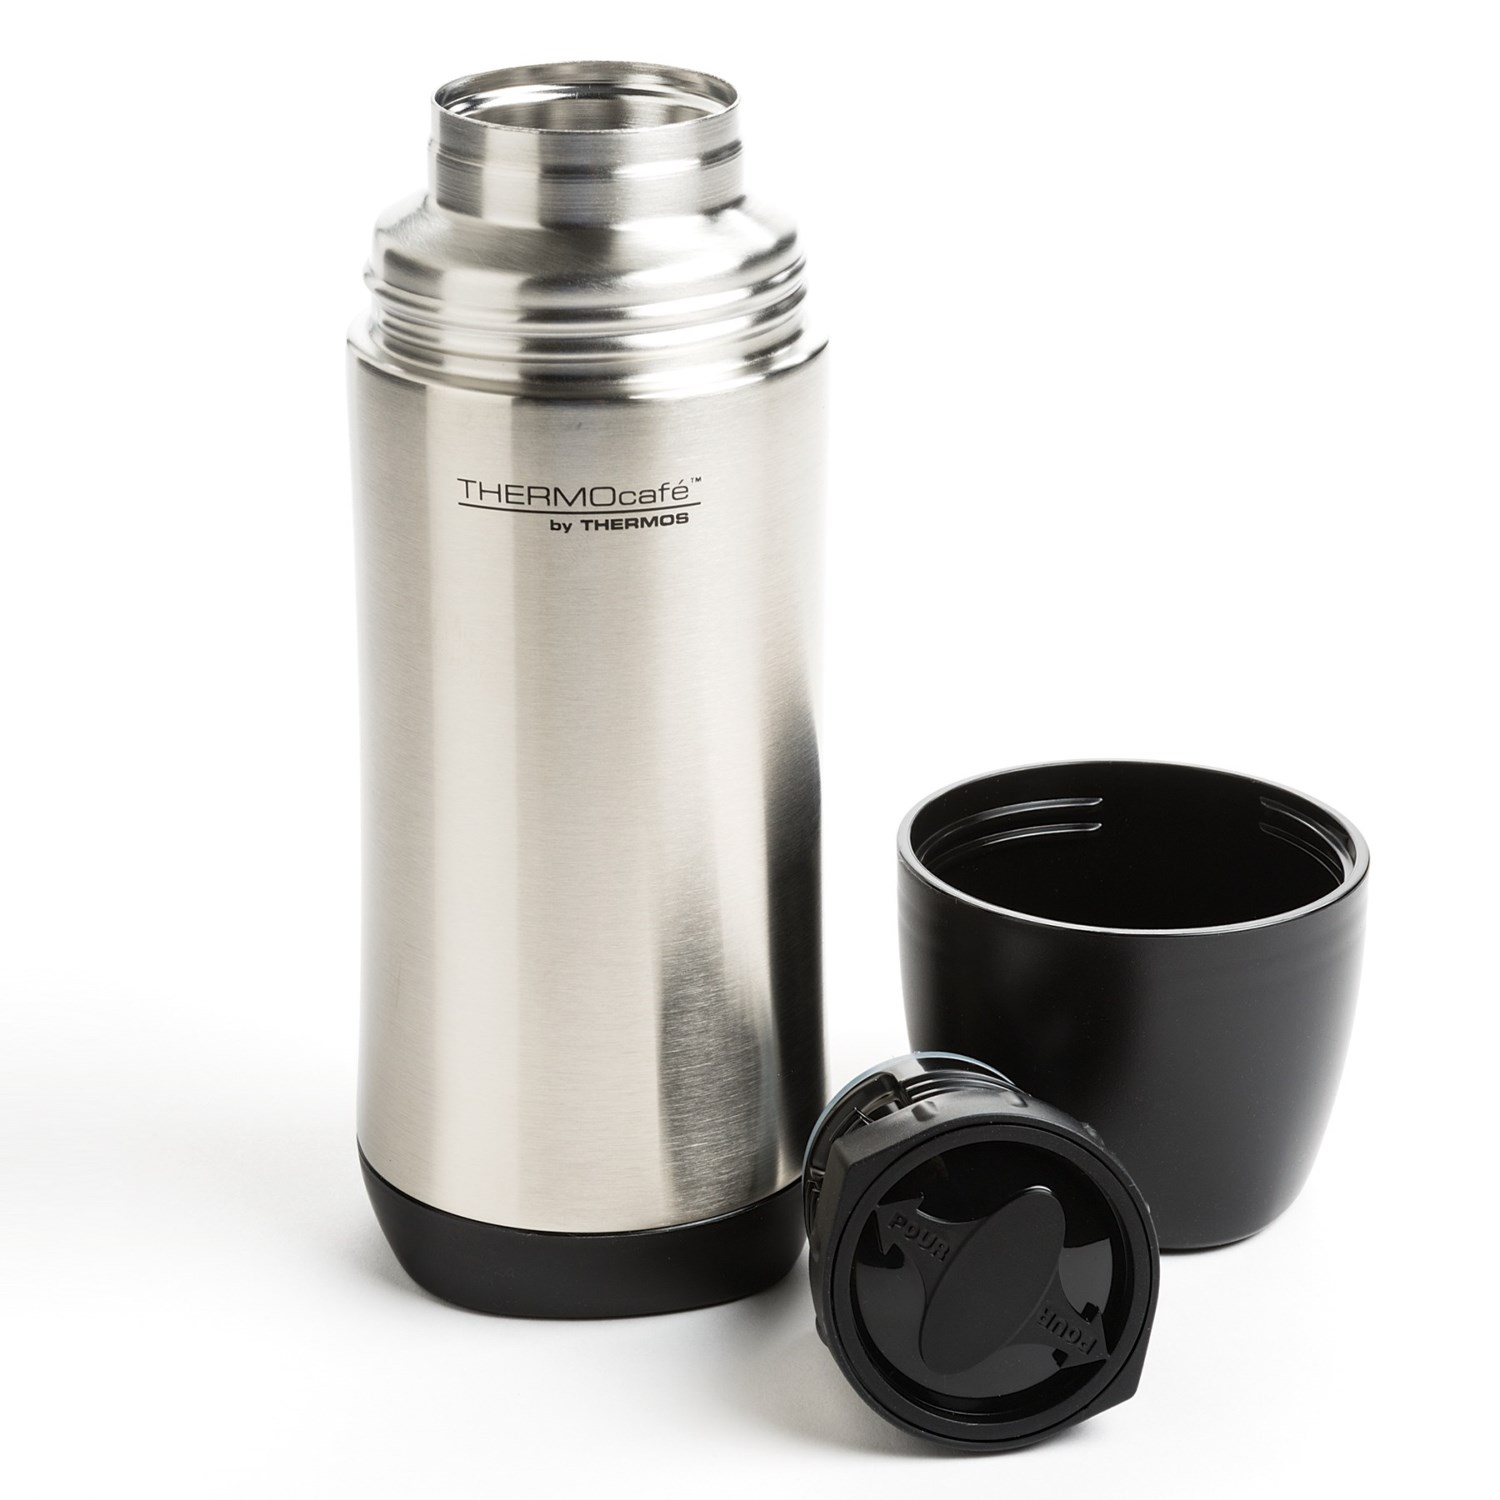 thermos thermocafe insulated stainless steel beverage bottle 17 save 31. Black Bedroom Furniture Sets. Home Design Ideas